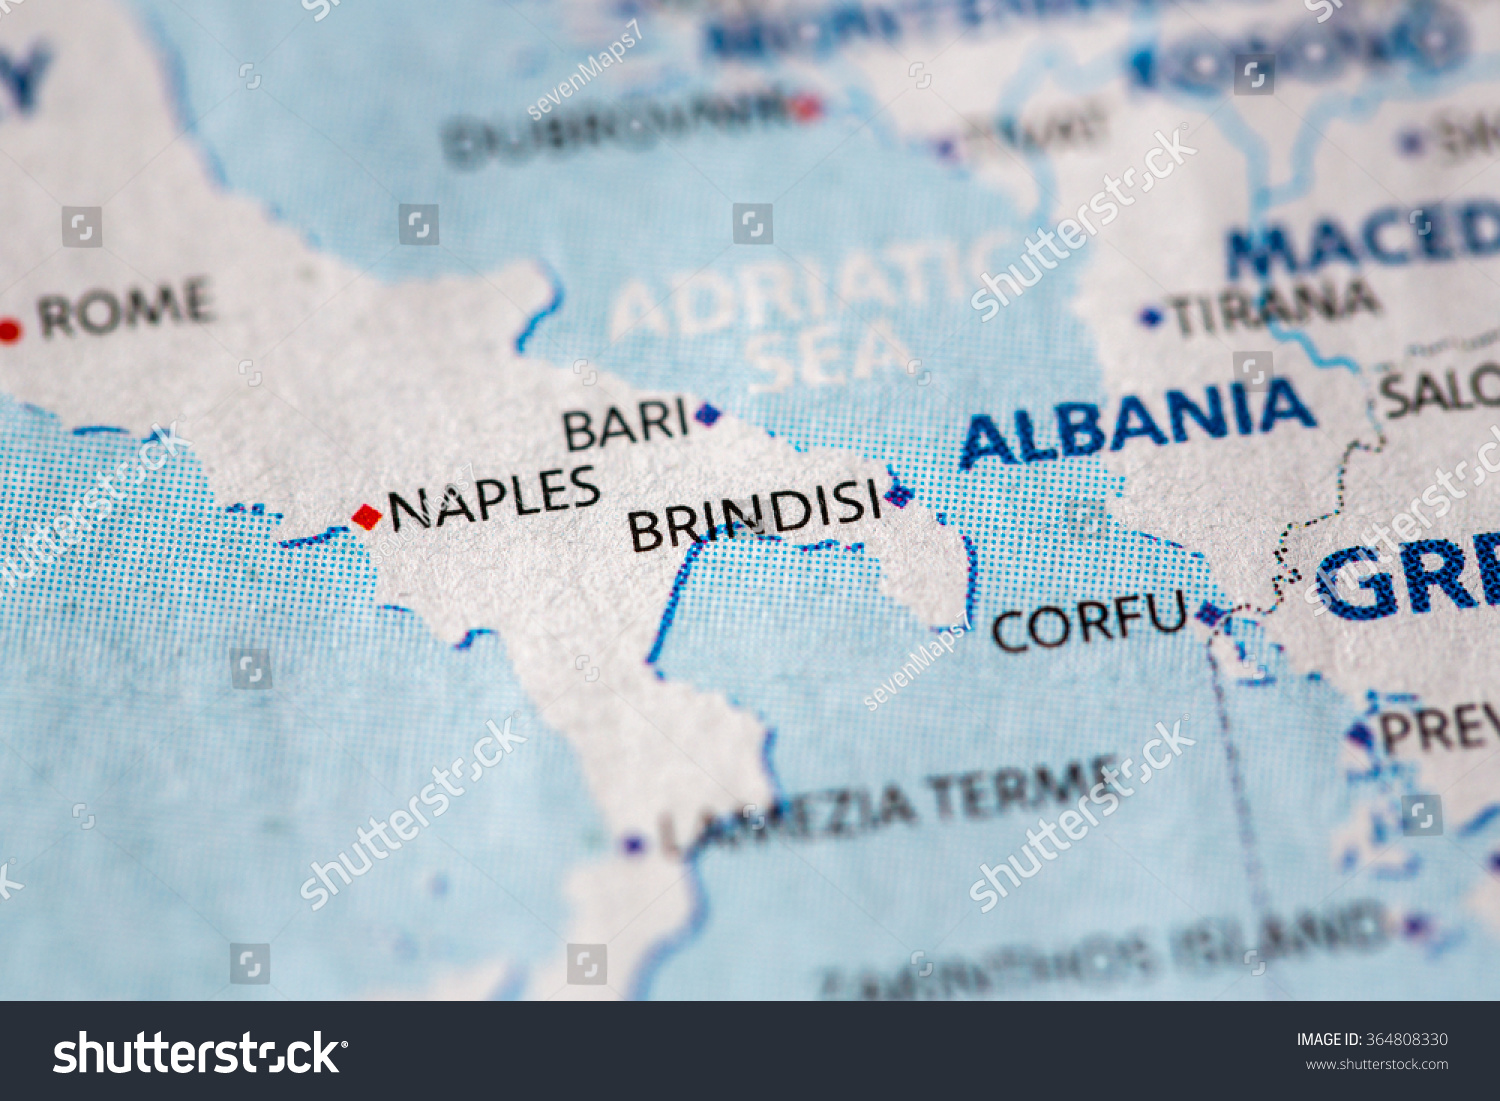 Closeup Brindisi Italy On Political Map Stock Photo 364808330